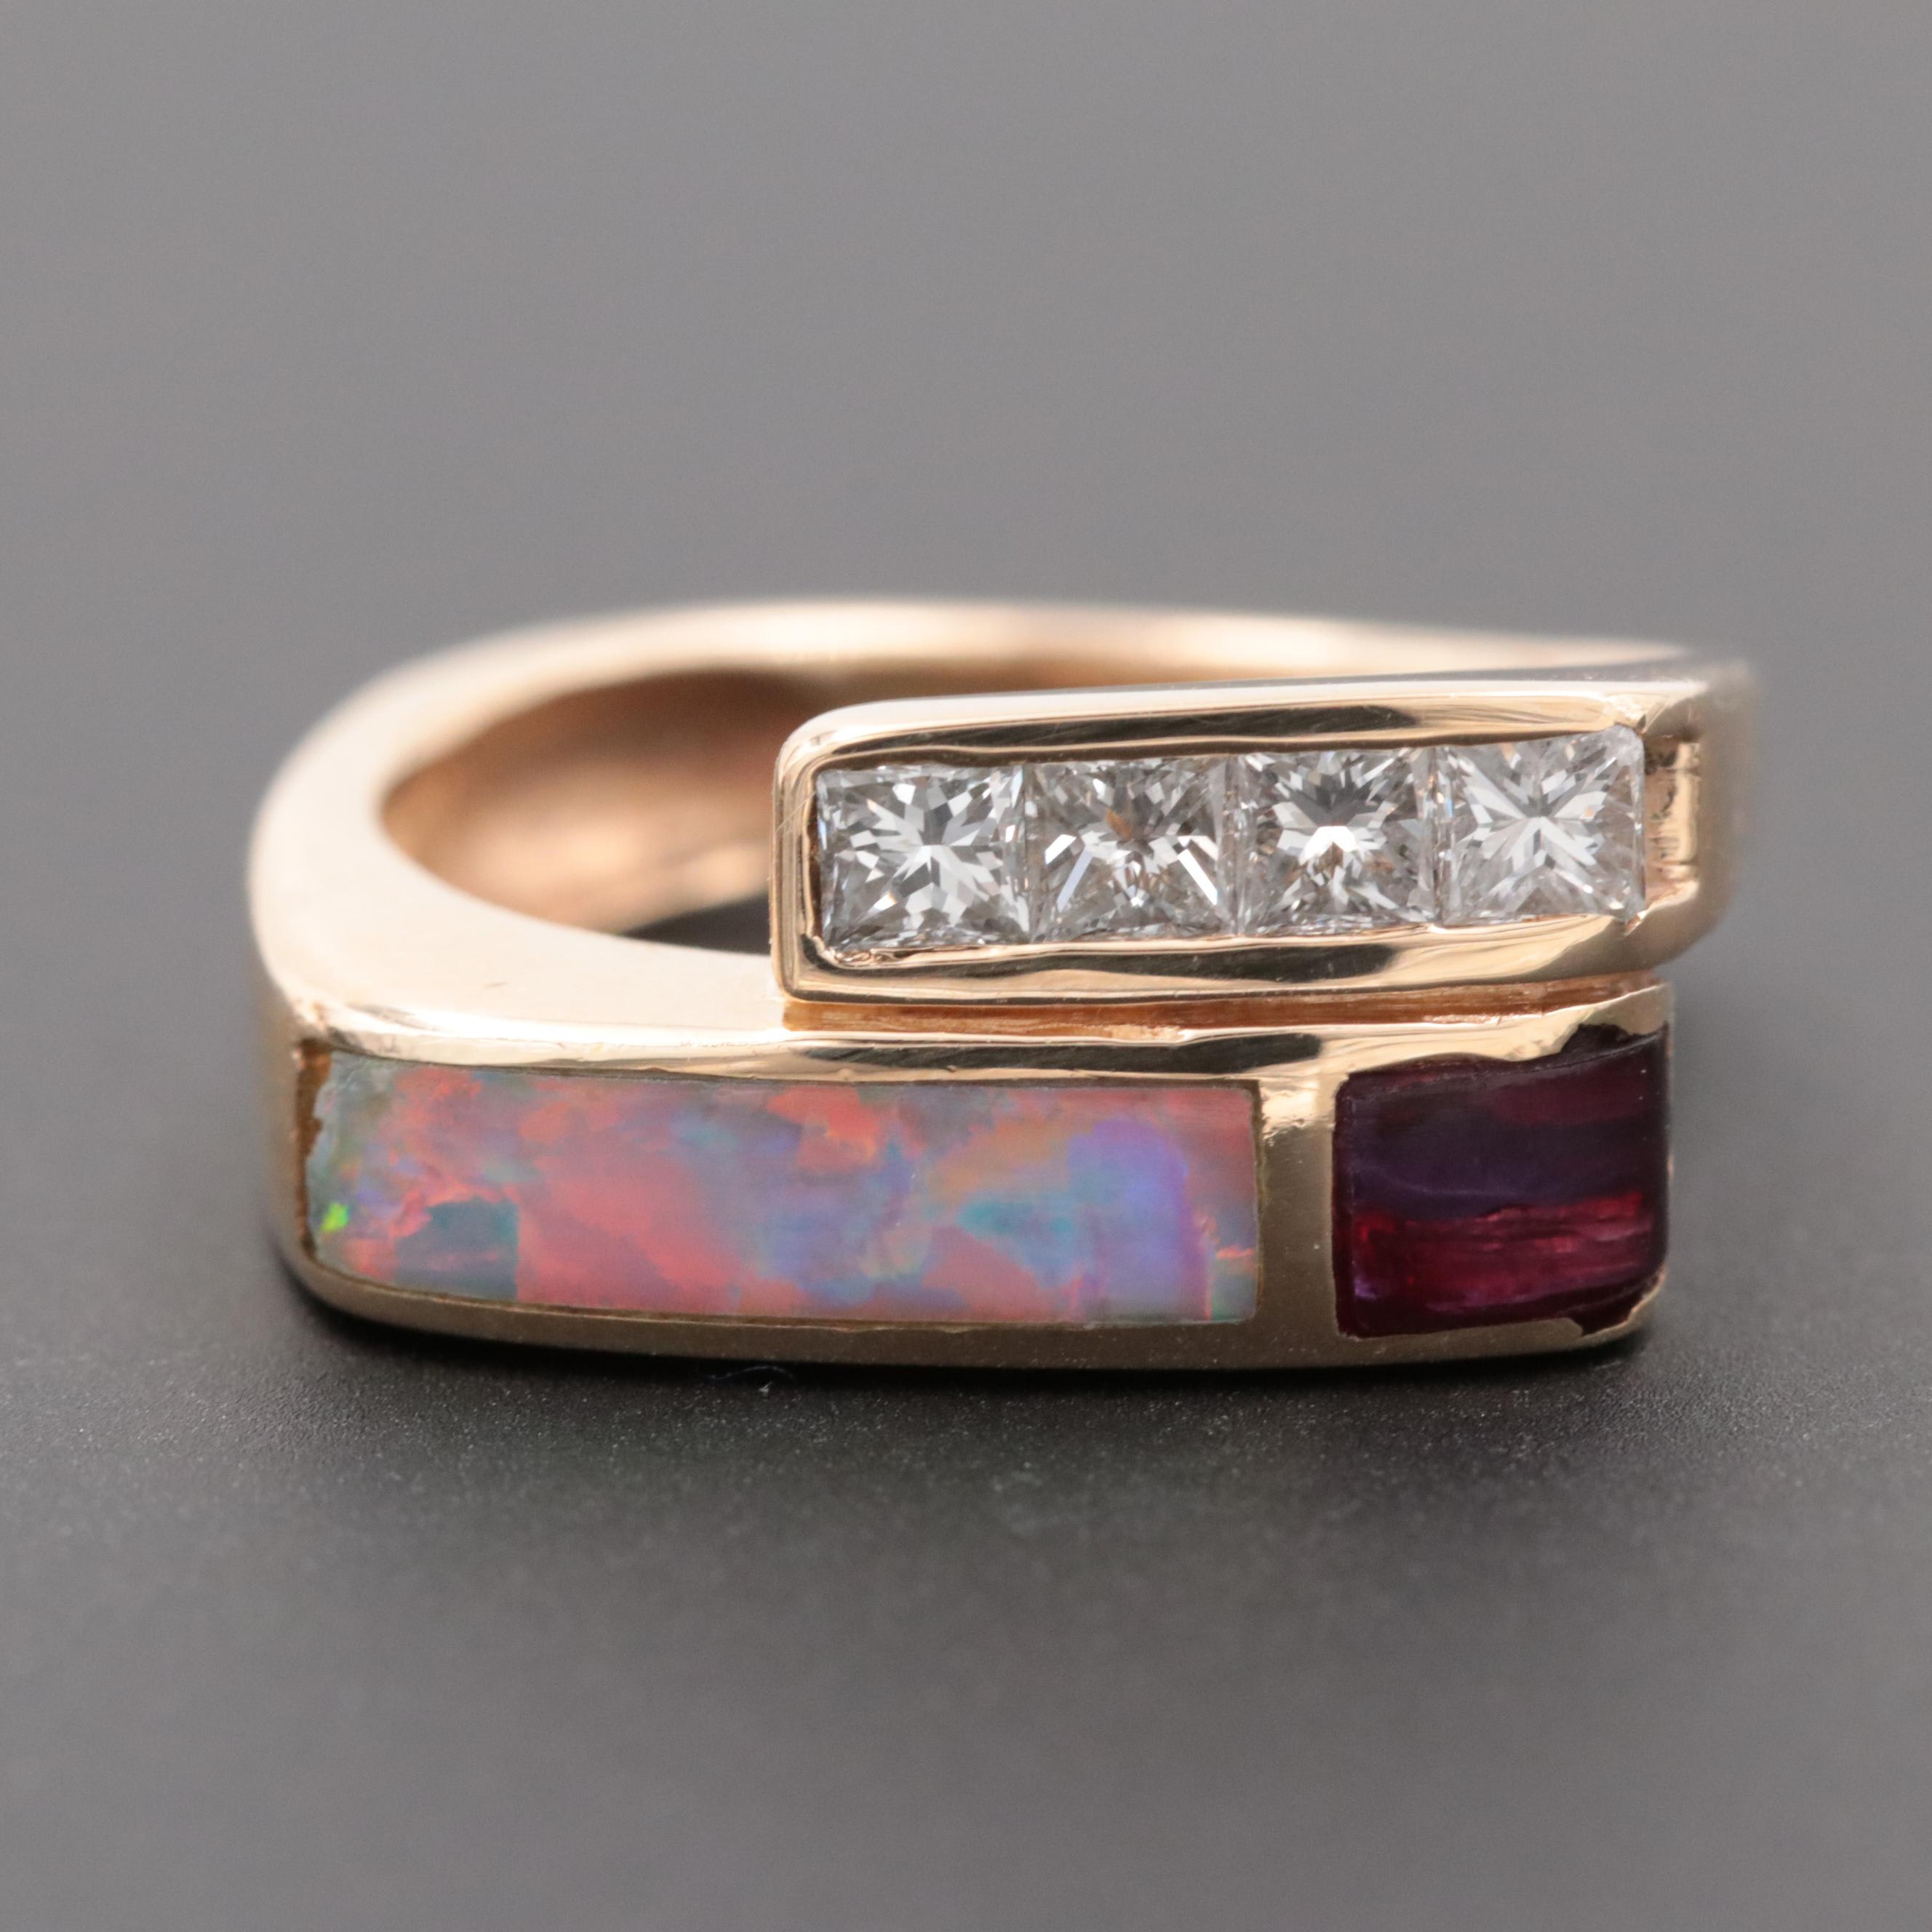 14K Yellow Gold Diamond, Opal and Amethyst Ring